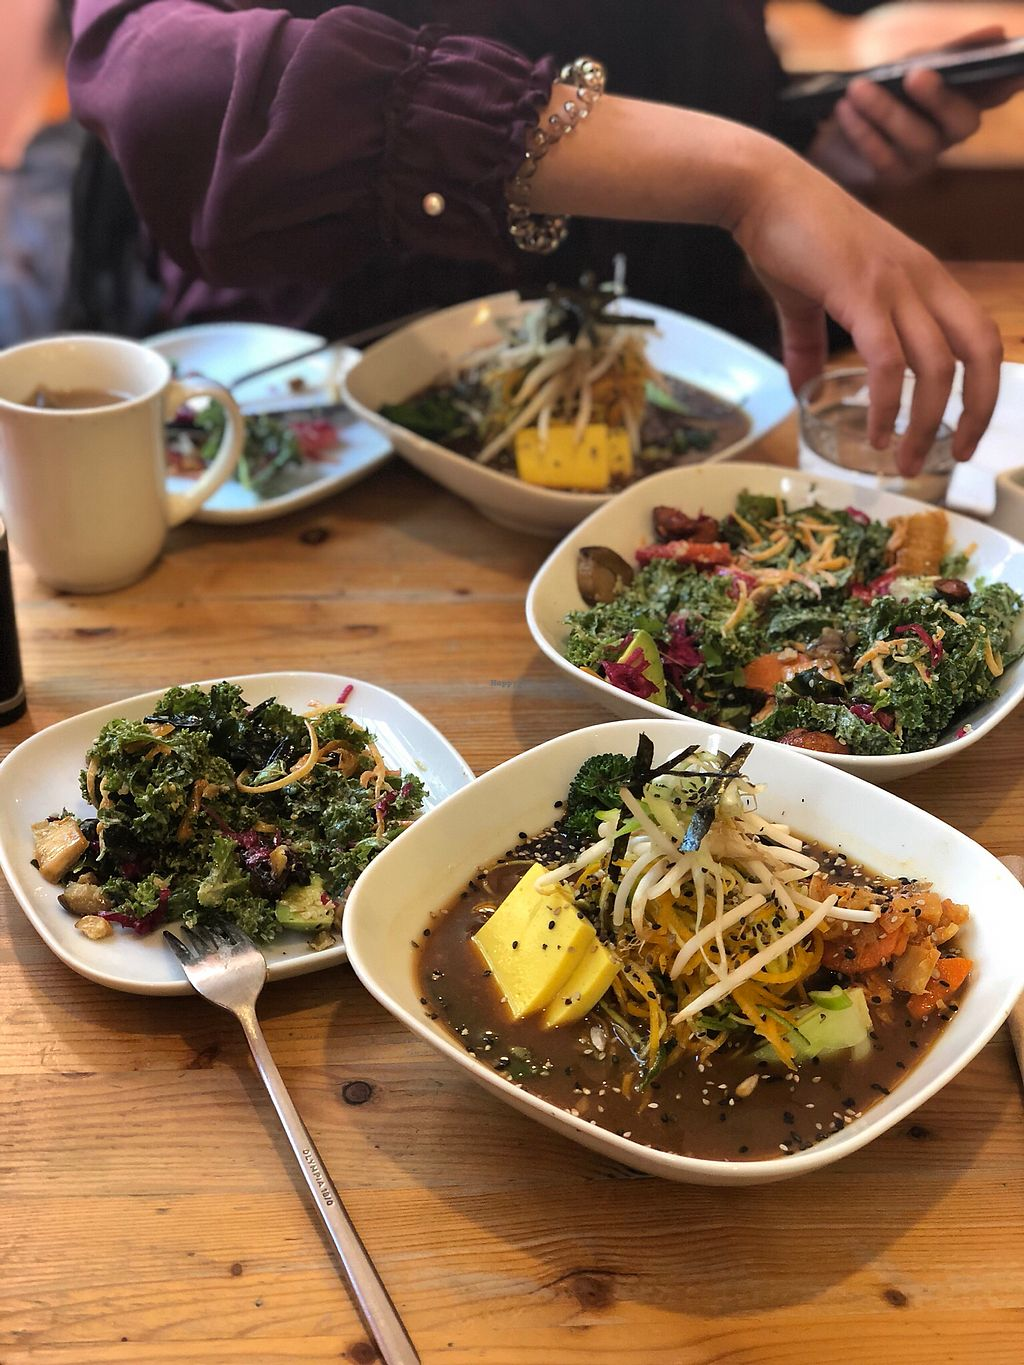 """Photo of Wild Food Cafe  by <a href=""""/members/profile/VitaliyaN"""">VitaliyaN</a> <br/>Wabi-Sabi Salad and Chickpea Tofu Ramen Bowl - yum!! <br/> February 11, 2018  - <a href='/contact/abuse/image/31440/357946'>Report</a>"""